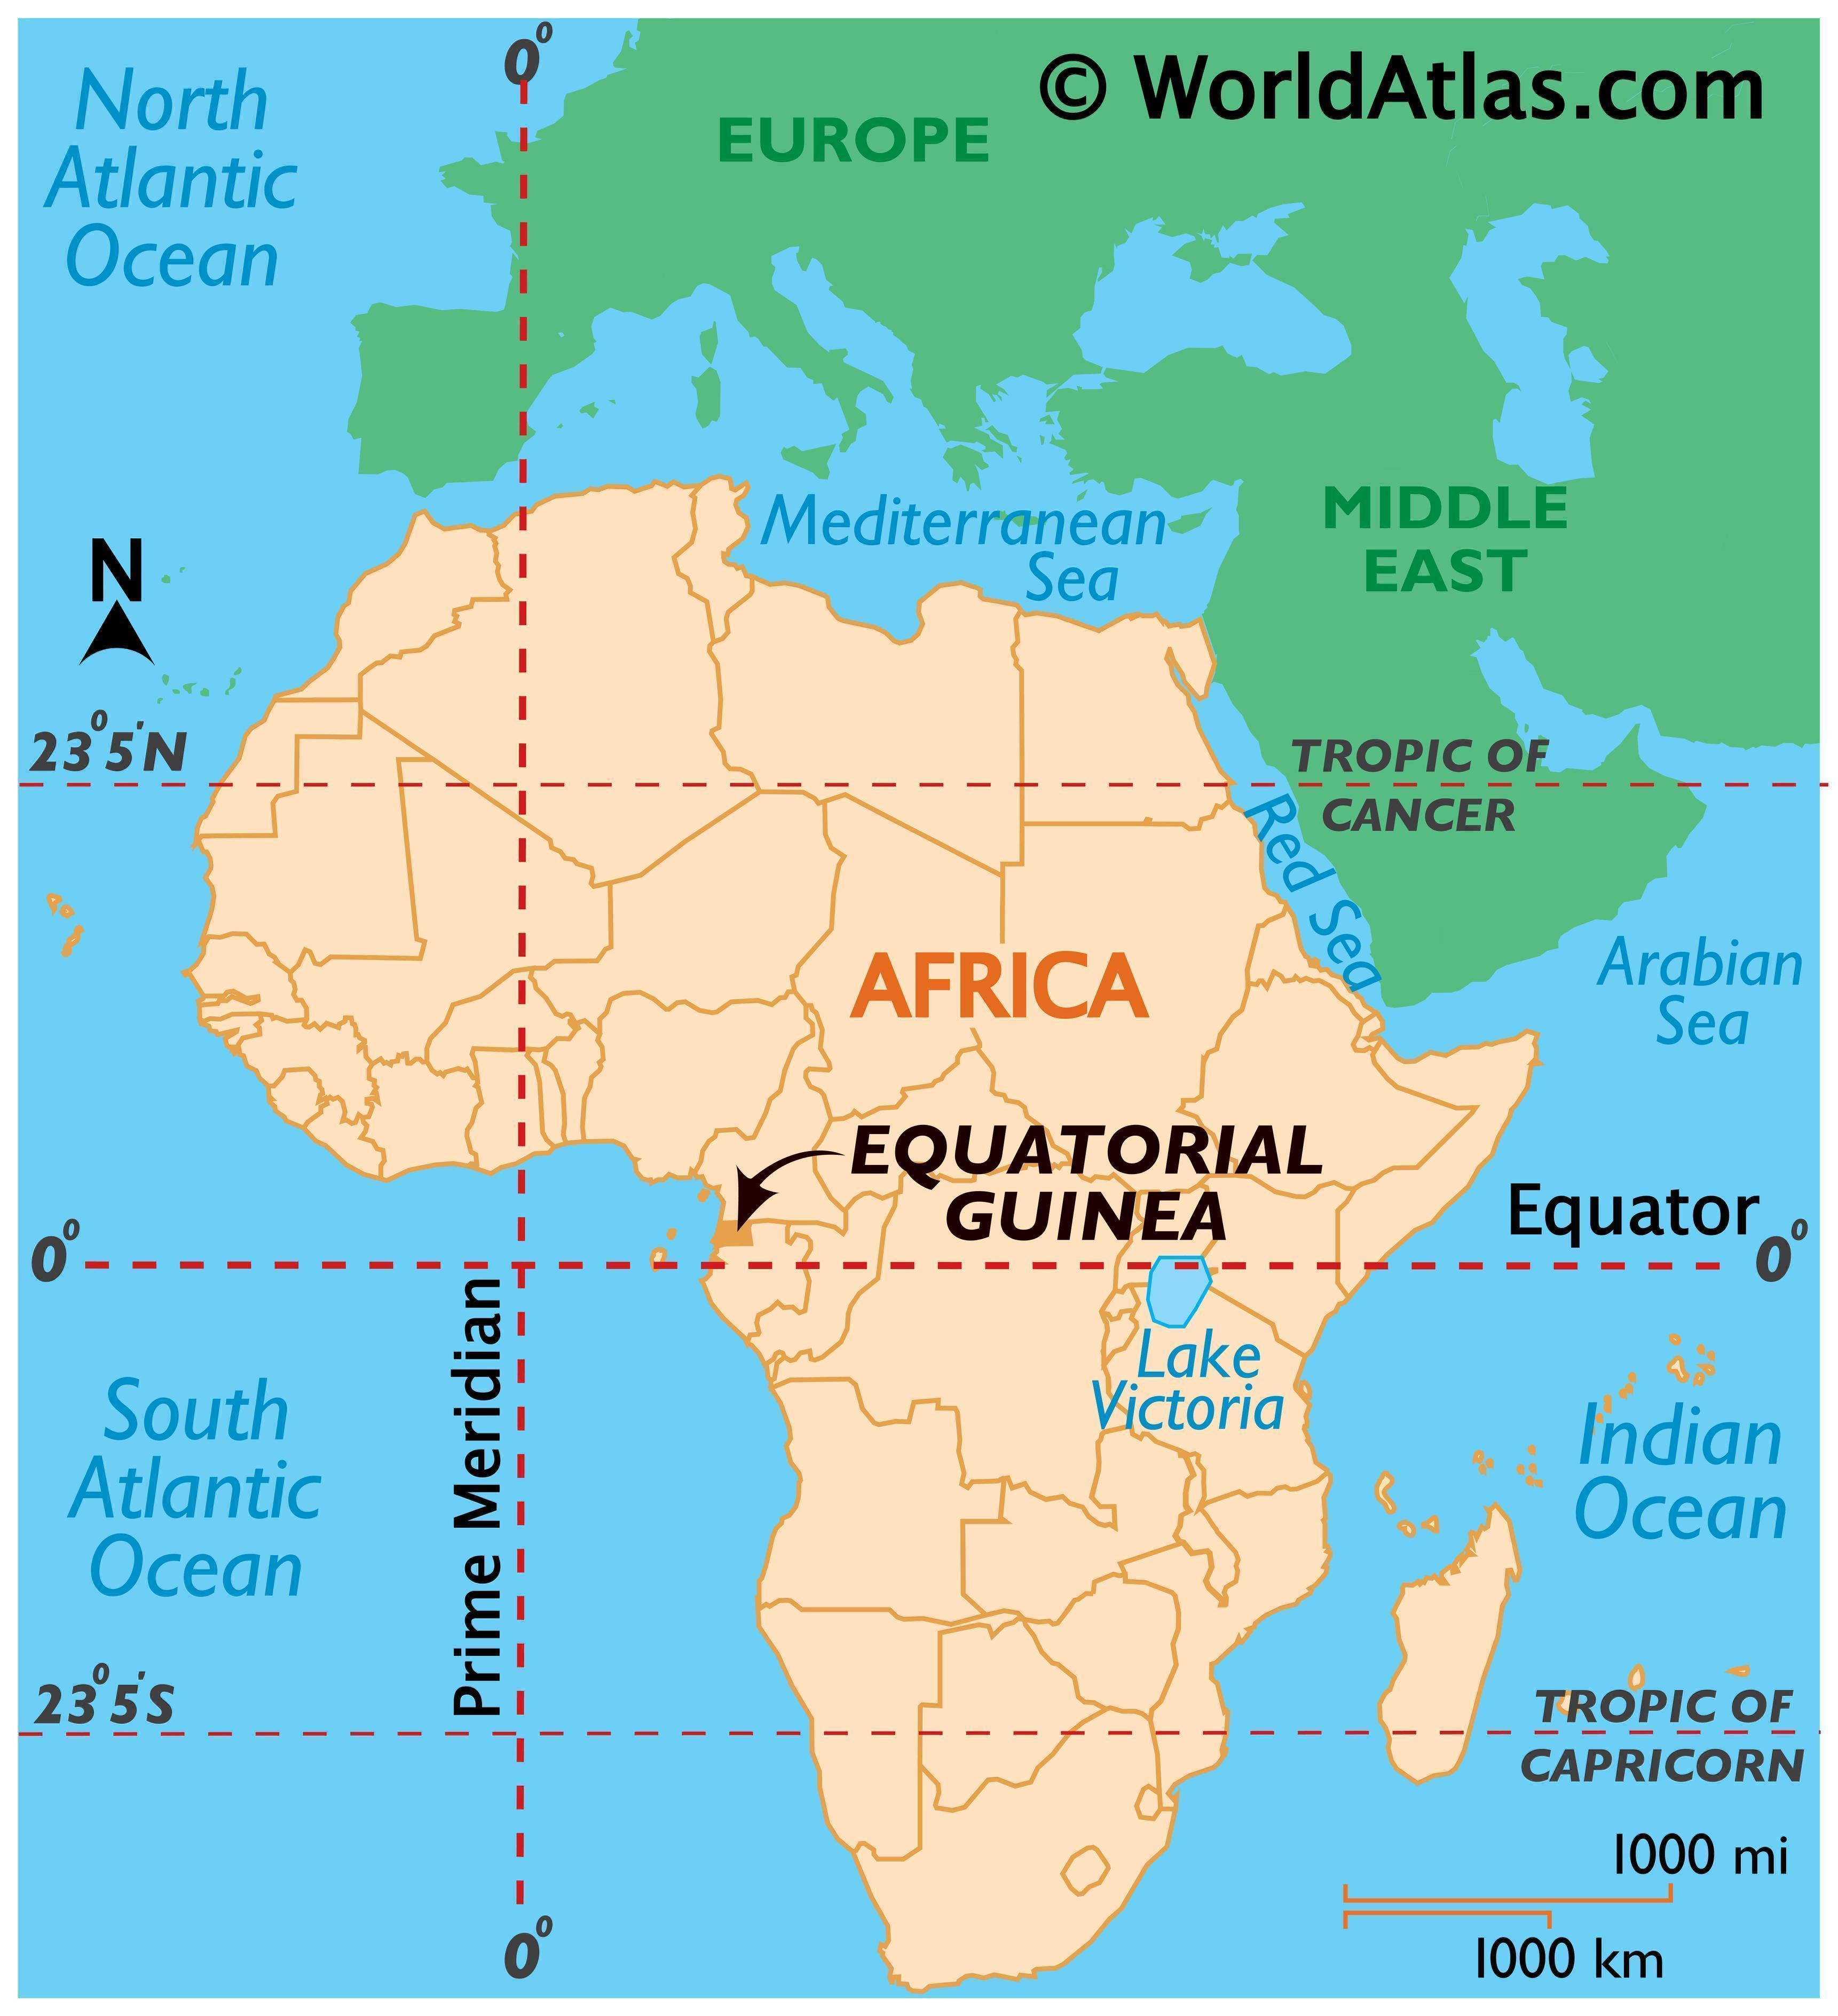 Map showing location of Equatorial Guinea in the world.